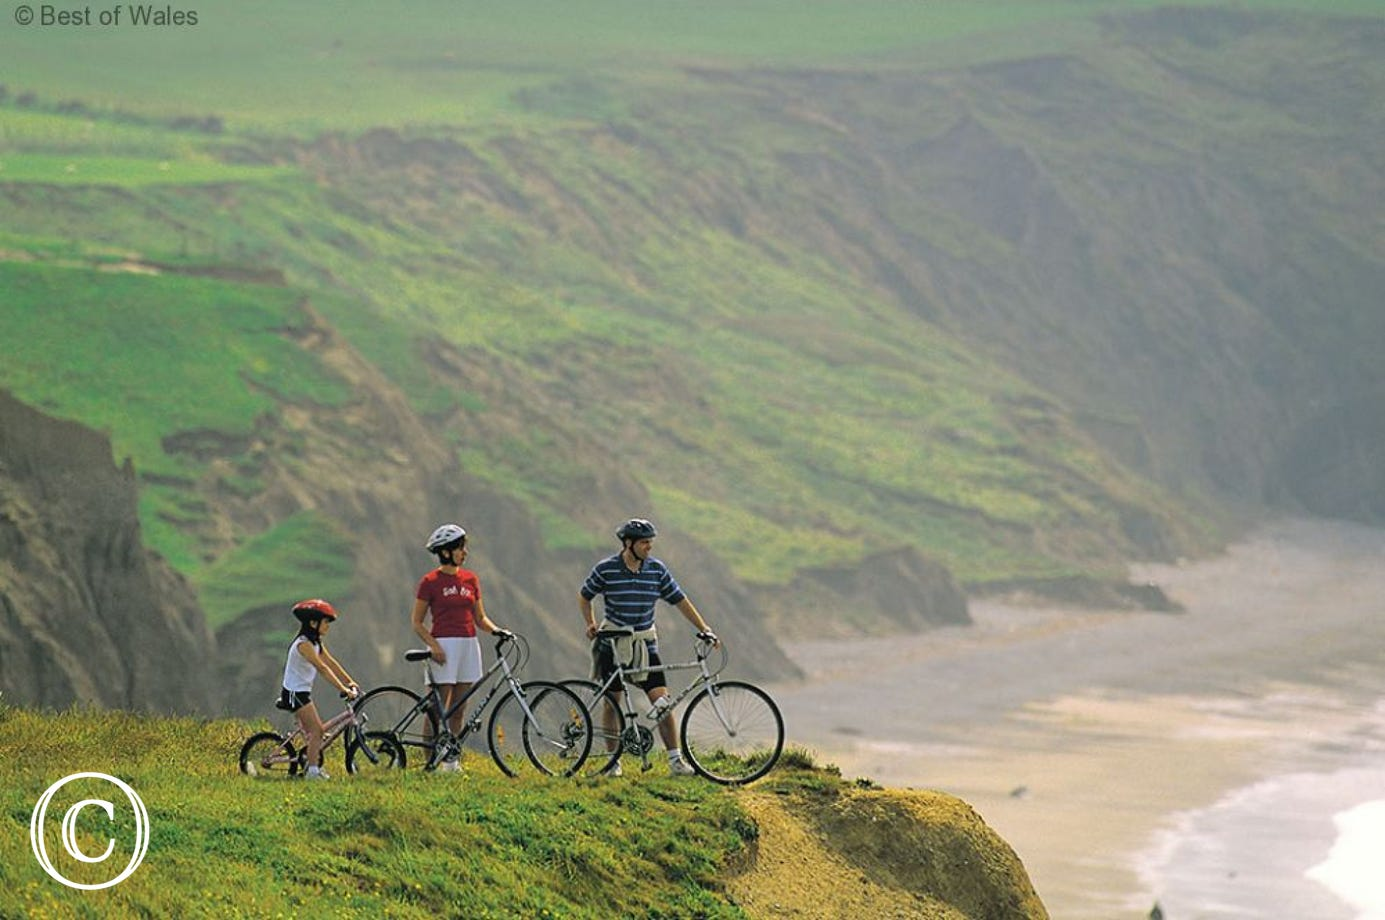 Cycling around the Aberdaron area is a great, inspiring day out